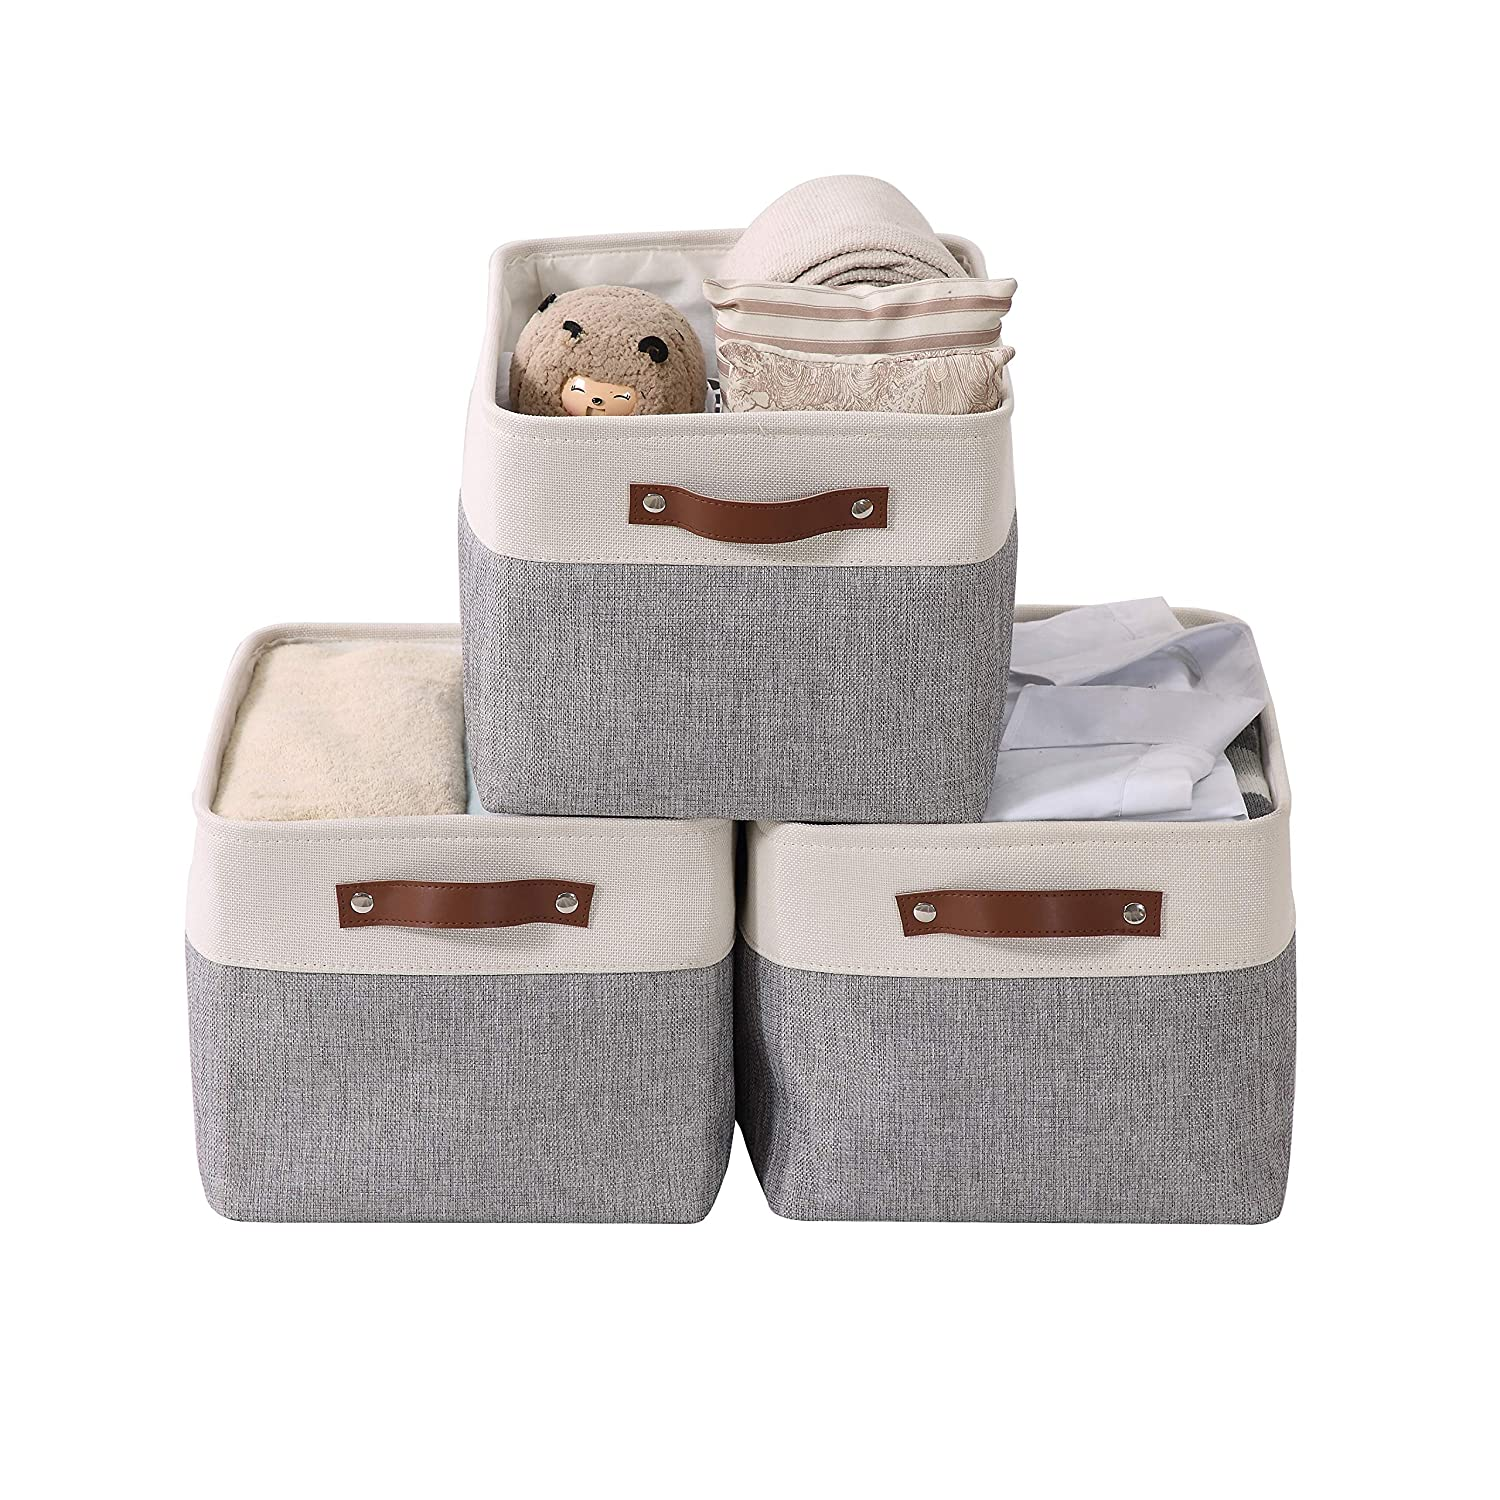 DECOMOMO Large Foldable Storage Bin [3-Pack] Collapsible Sturdy Cationic Fabric Storage Basket Cube W/Handles for Organizing Shelf Nursery Home Closet & Office - Grey & White 15 x 11 x 9.5